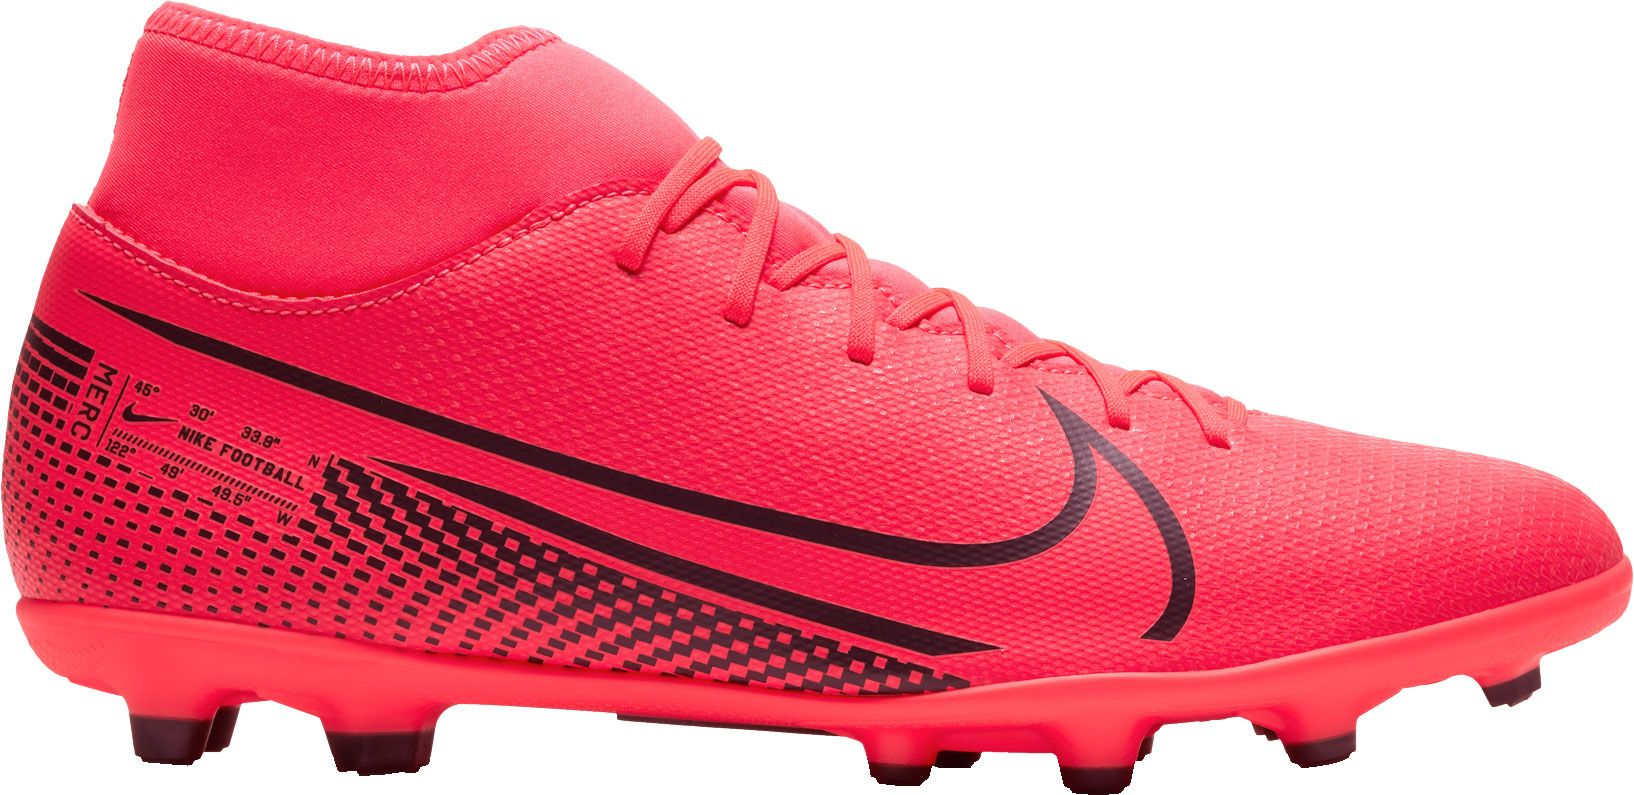 Nike Mercurial Superfly 7 Club FG Soccer Cleats, Men's, Red